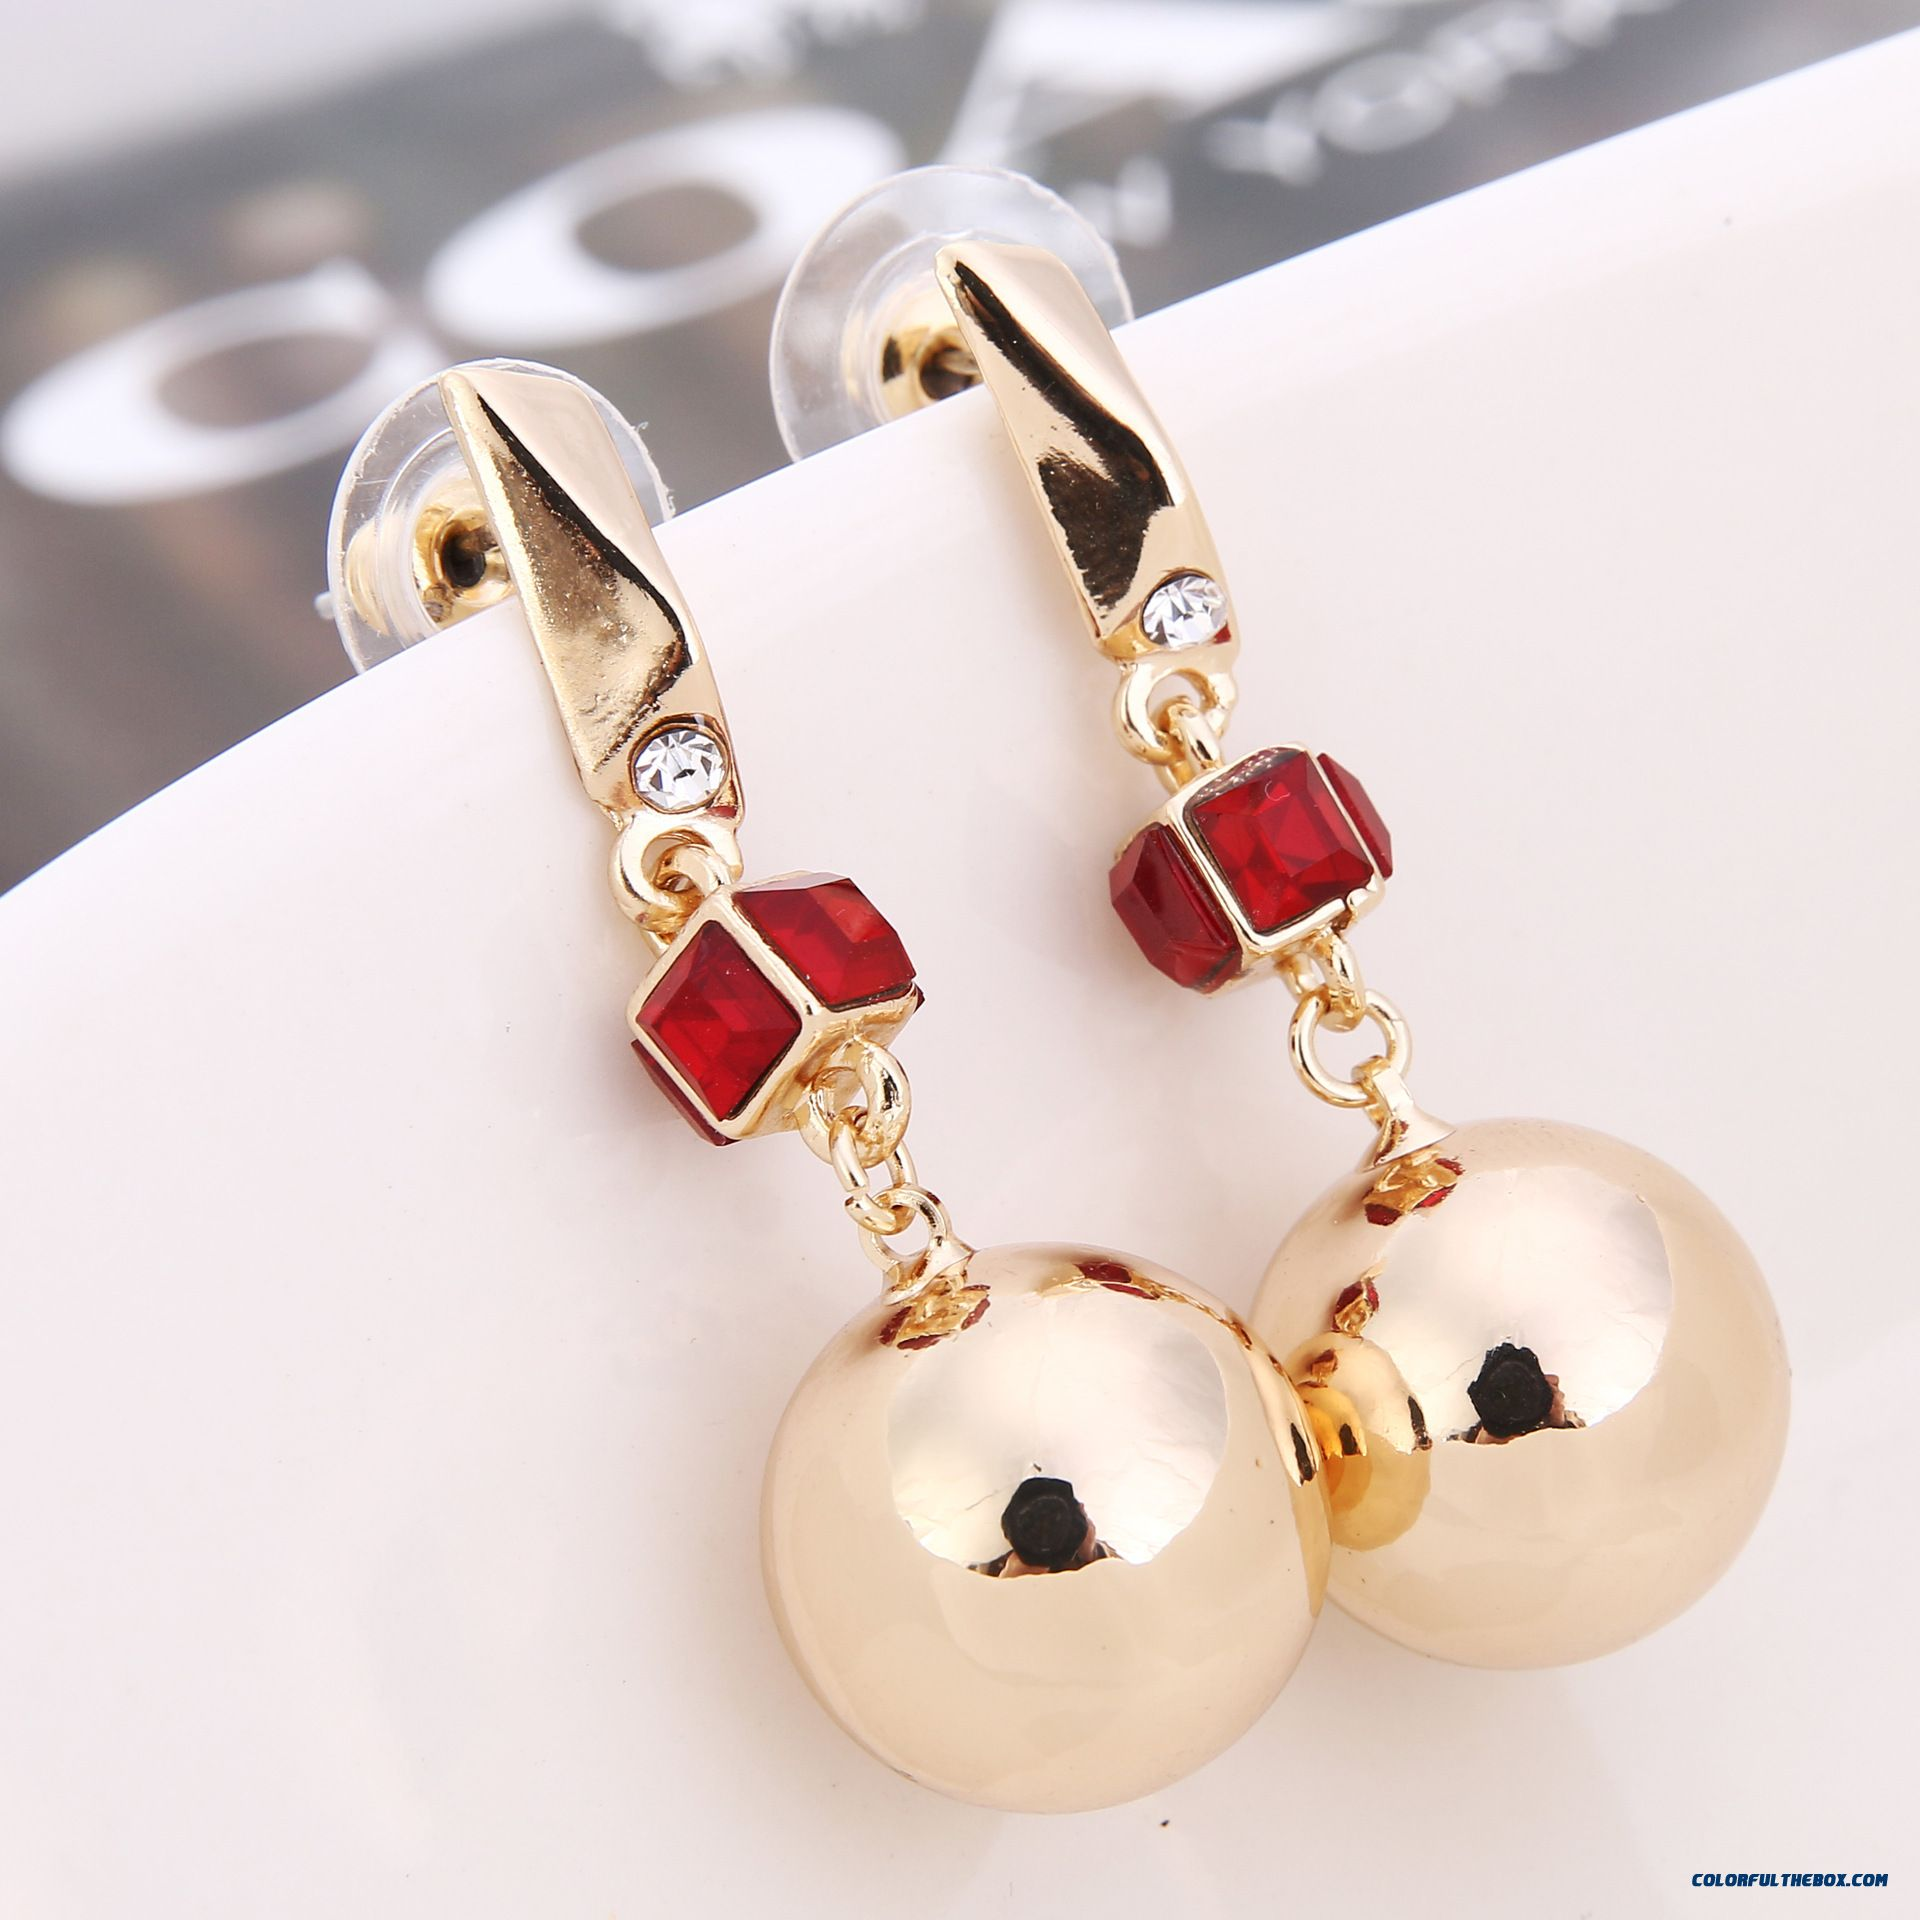 Free Shipping Women Glossy Gold Plated Crystal Beads Stud Earrings Hypoallergenic Jewelry